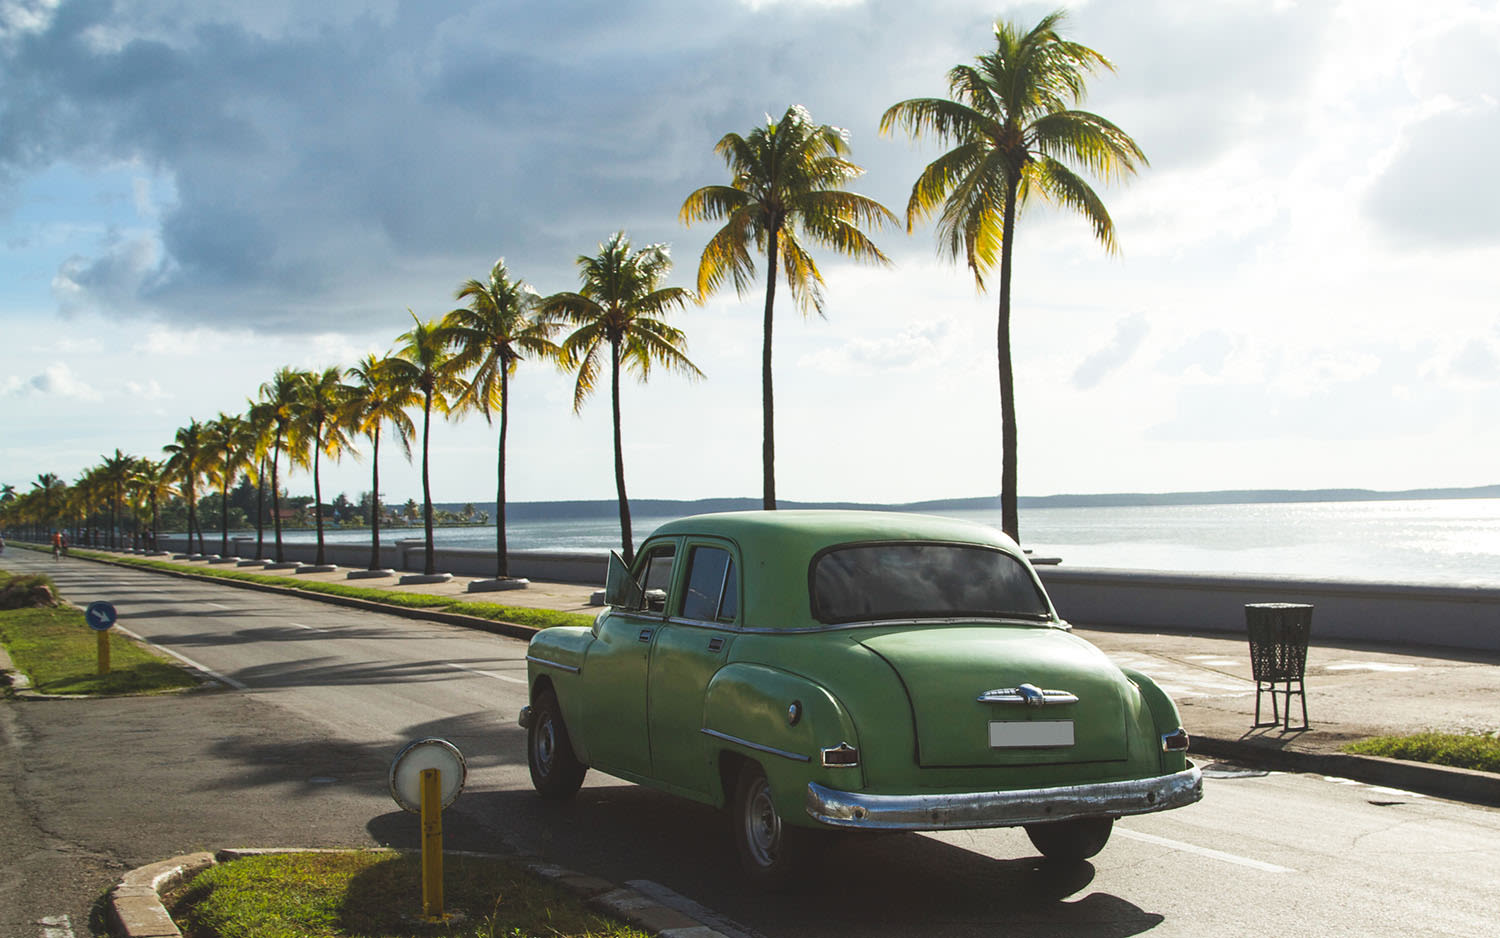 A green classic car drives down a road lined with palm trees next to the beach